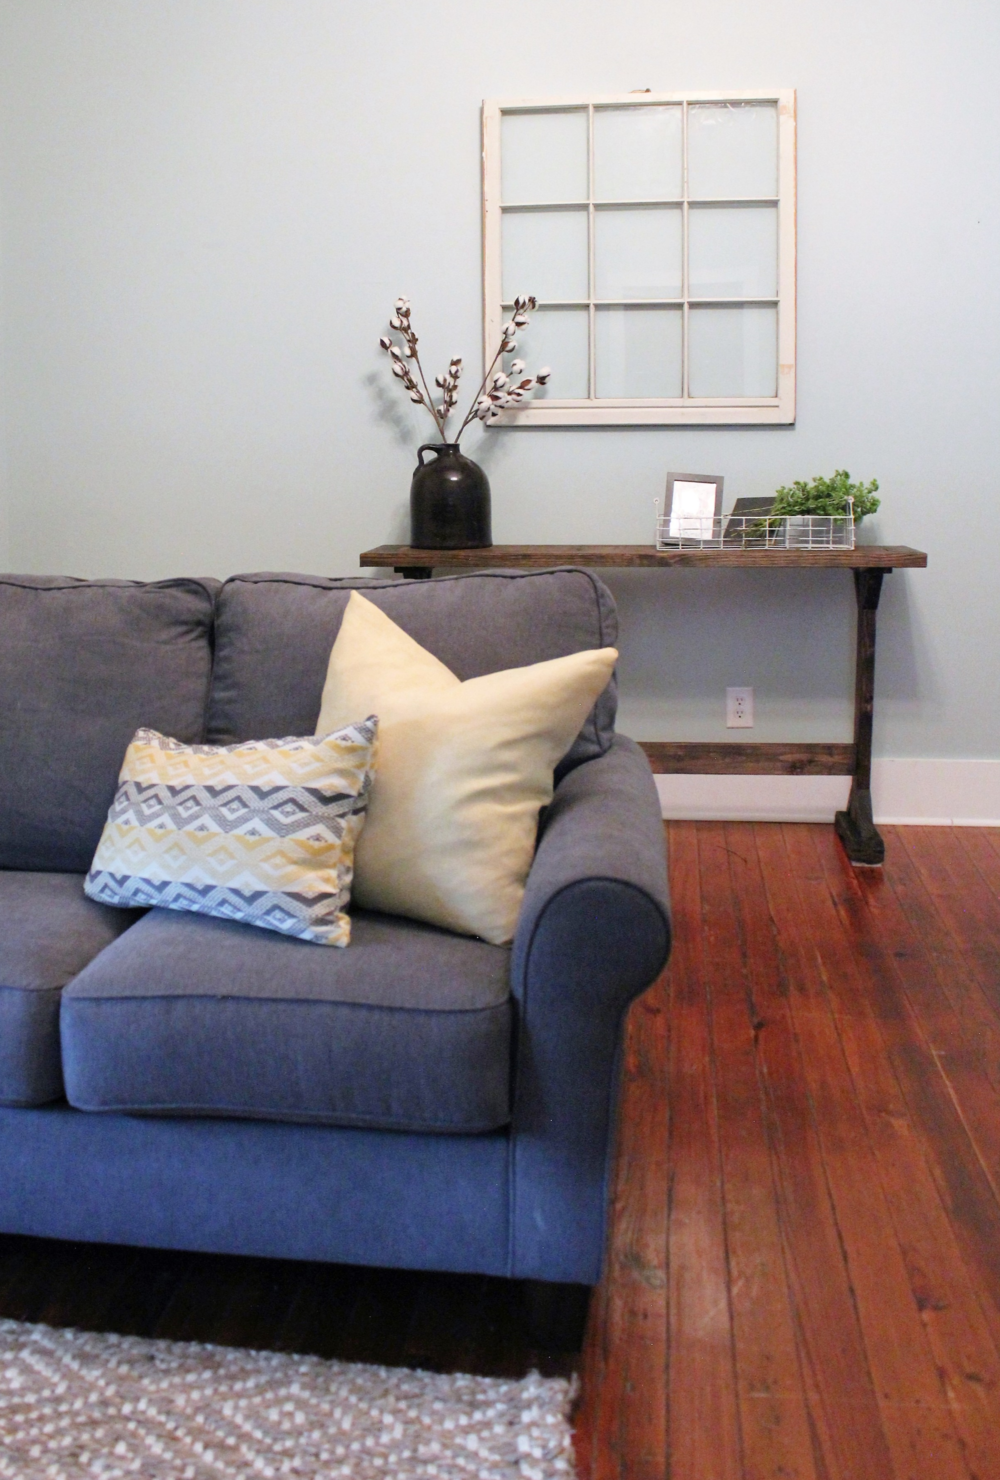 Couch: Rooms for Rent // Pillows: Home Goods // Console Table: Peach & Pine Custom // Window: Flea Market // Rug: Rugsusa.com